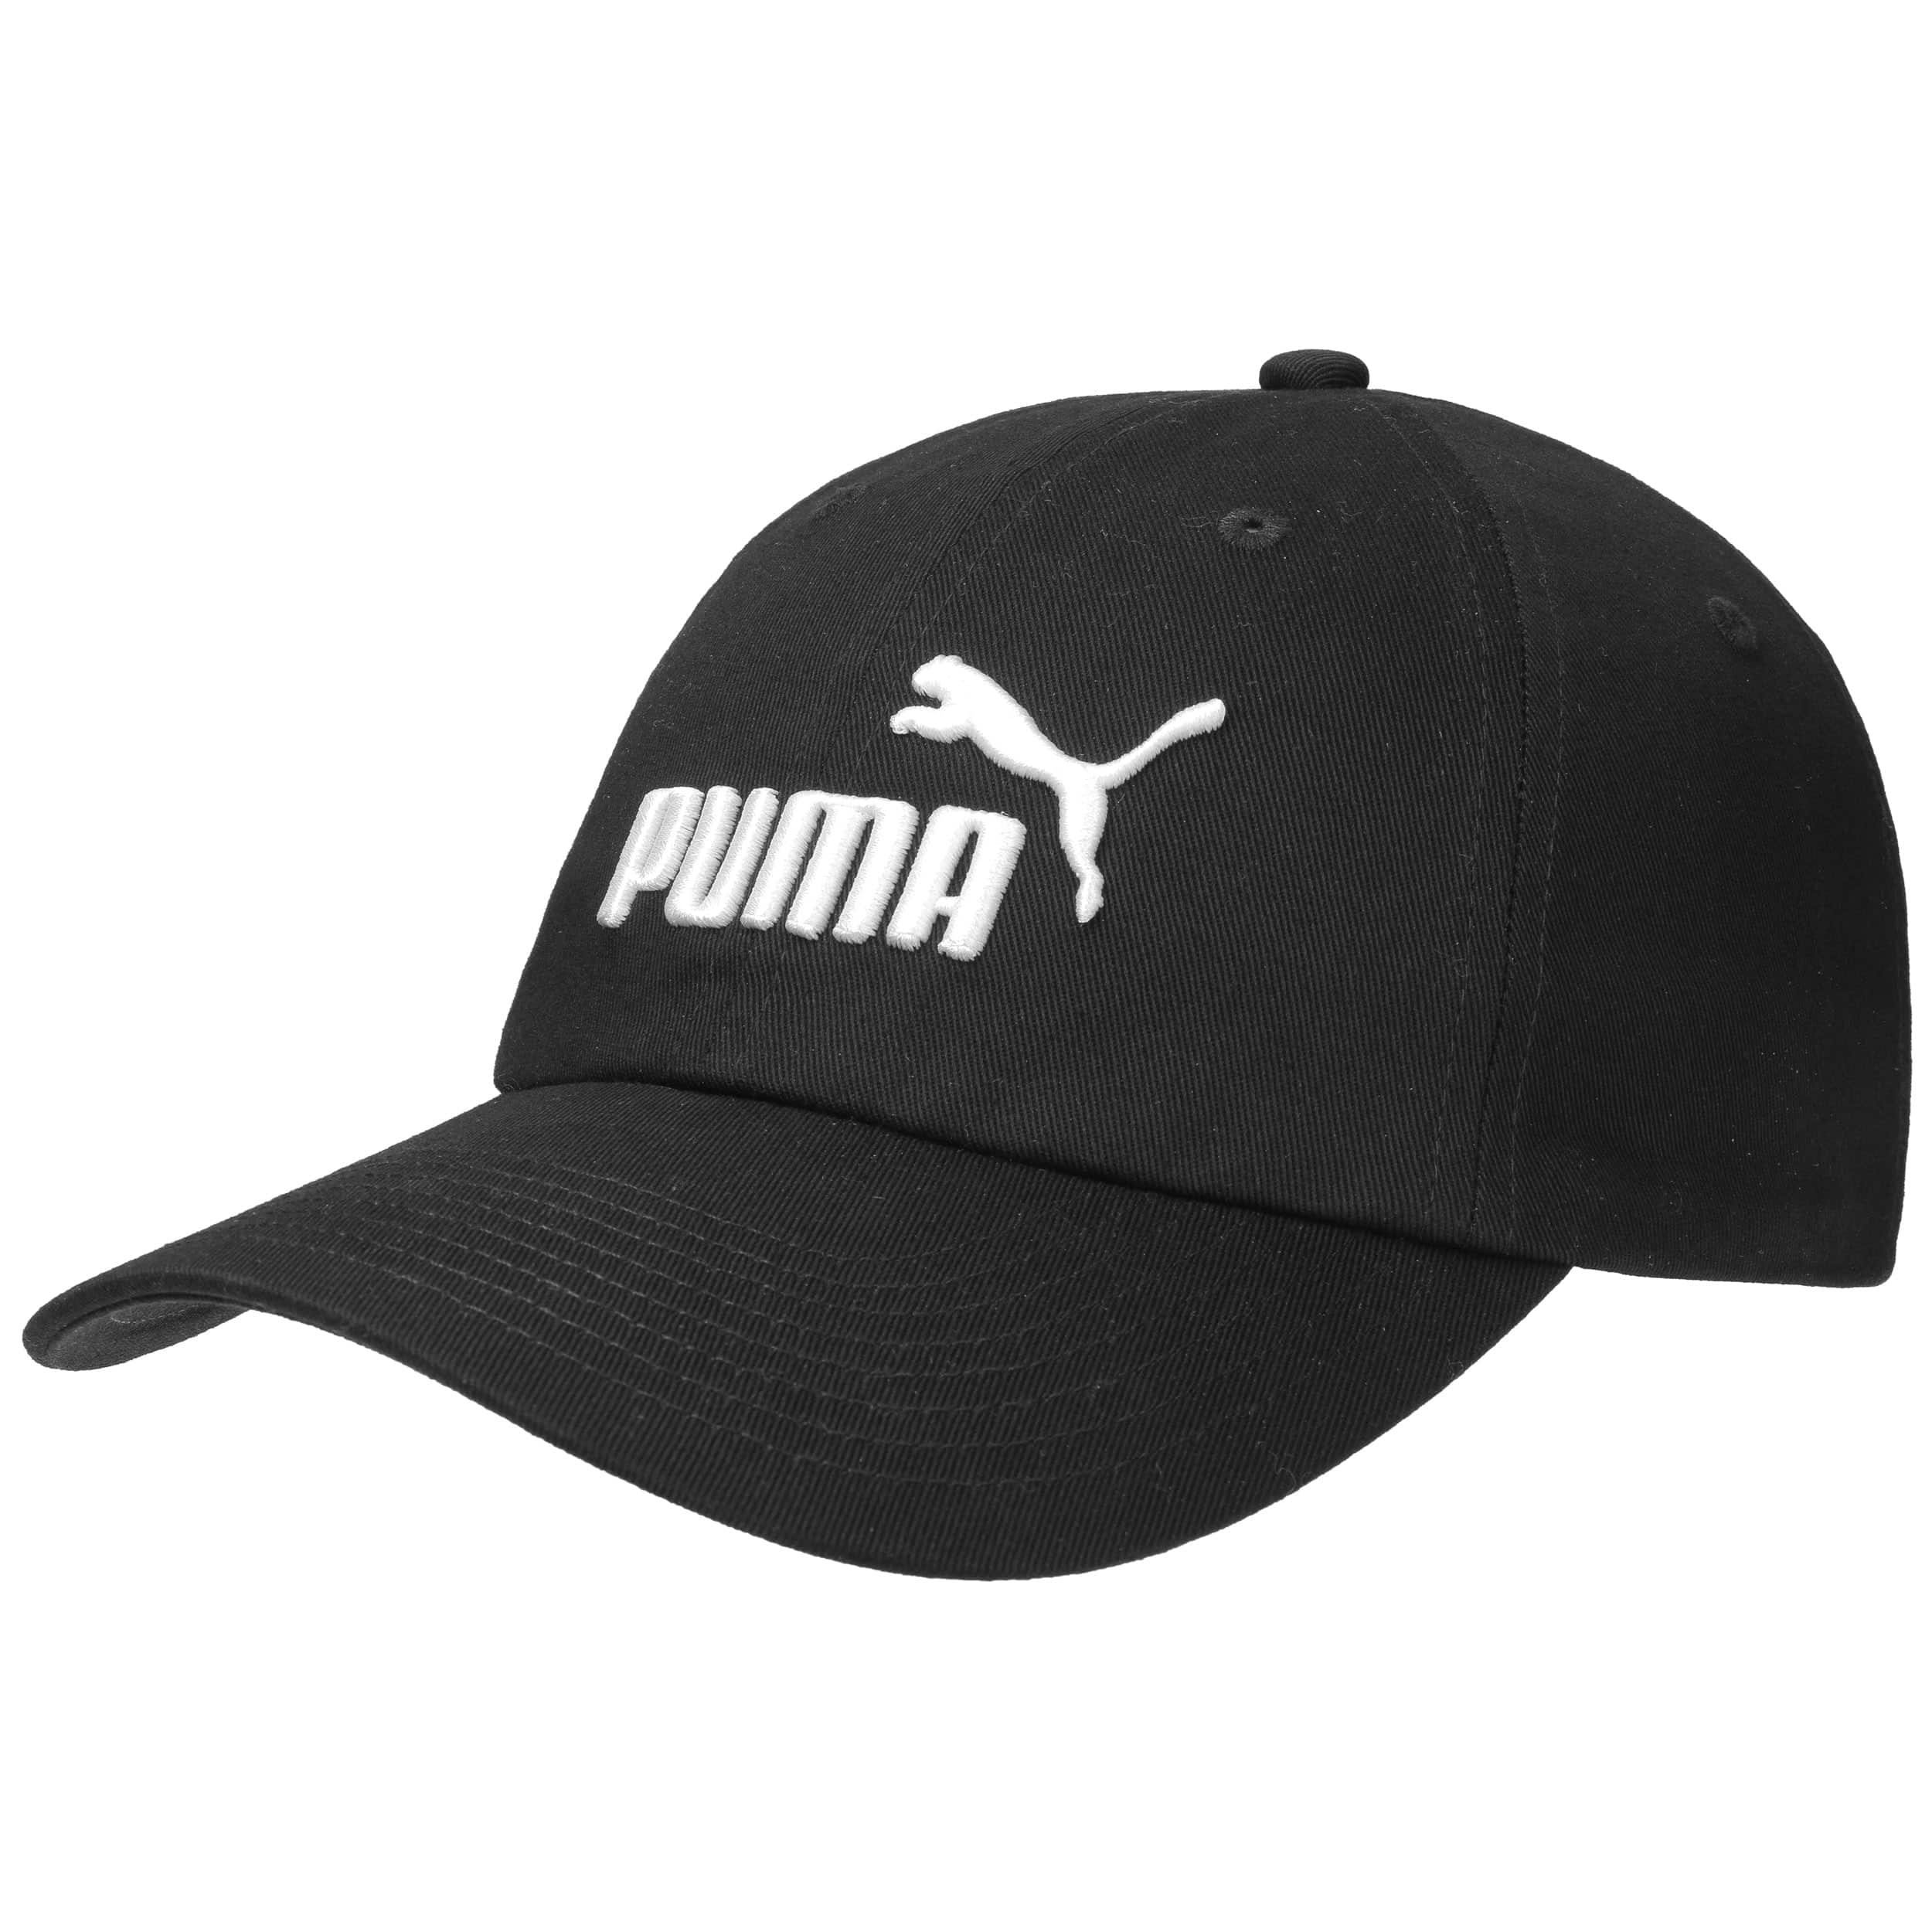 1 Baseball Cap by PUMA - black 5 ... e778203f983